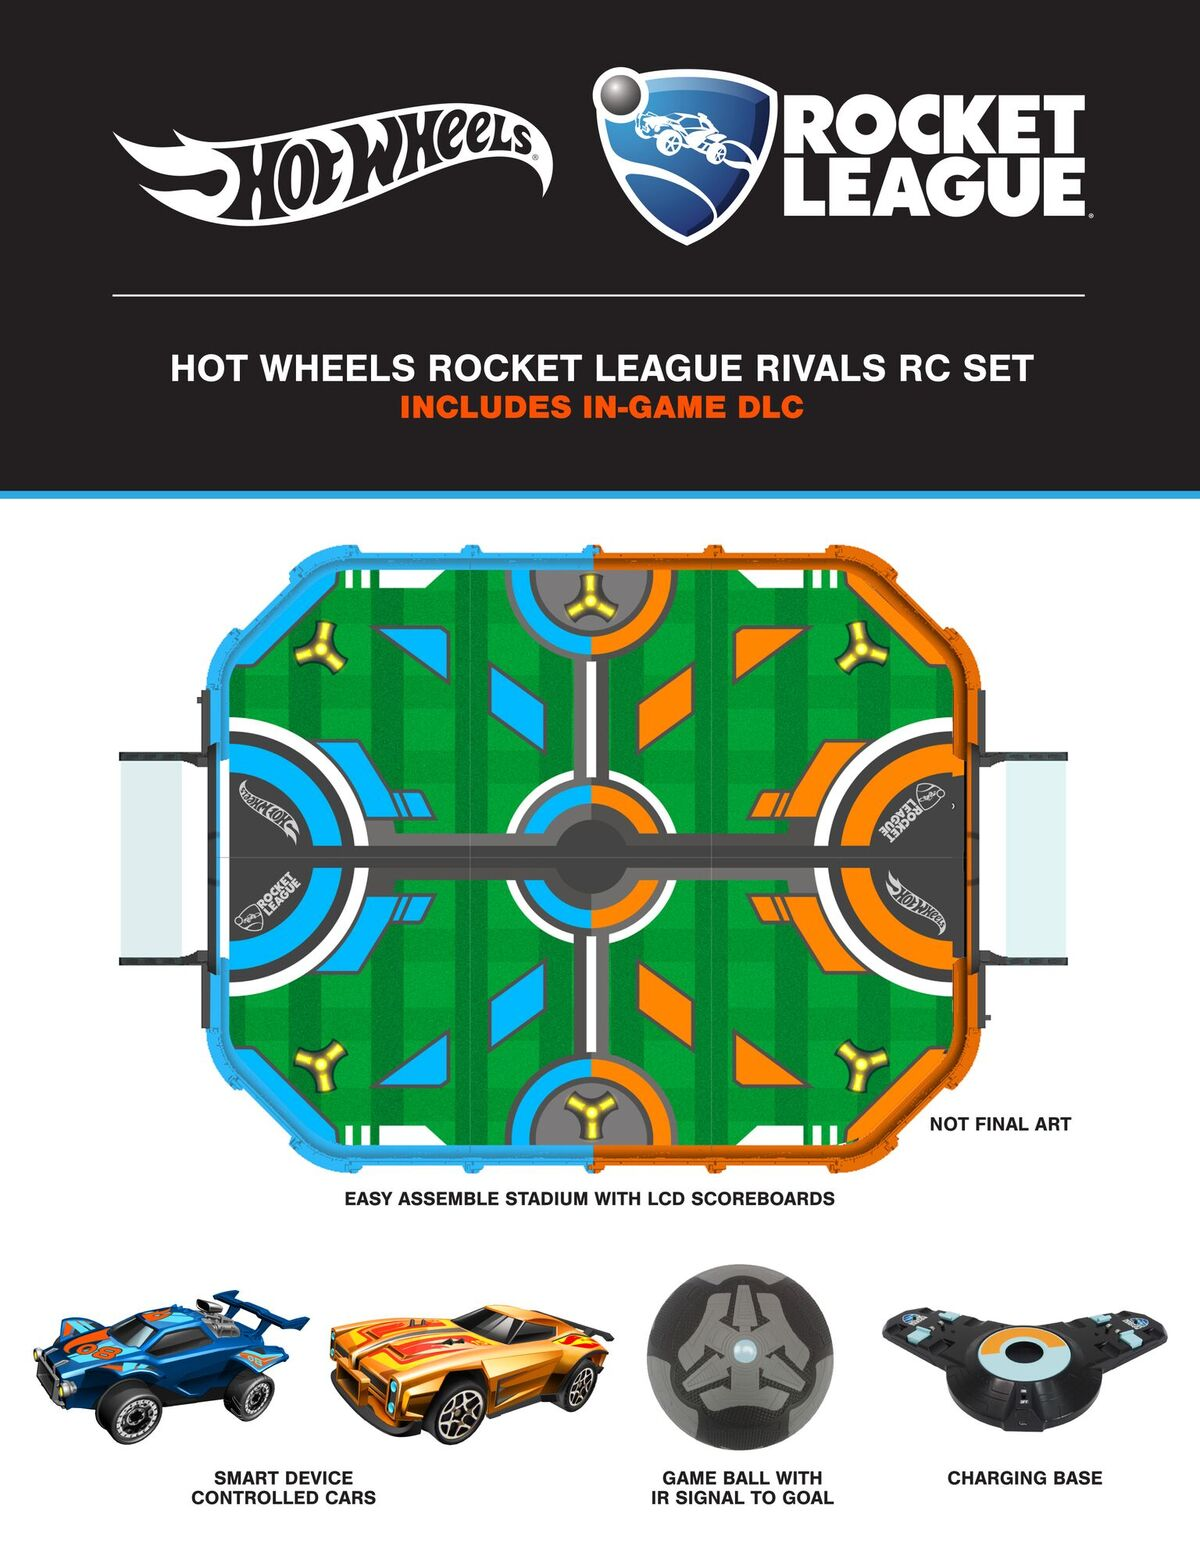 Psyonix e Hot Wheels annunciano il Rocket League RC Toy Set, un set di macchinine radiocomandate